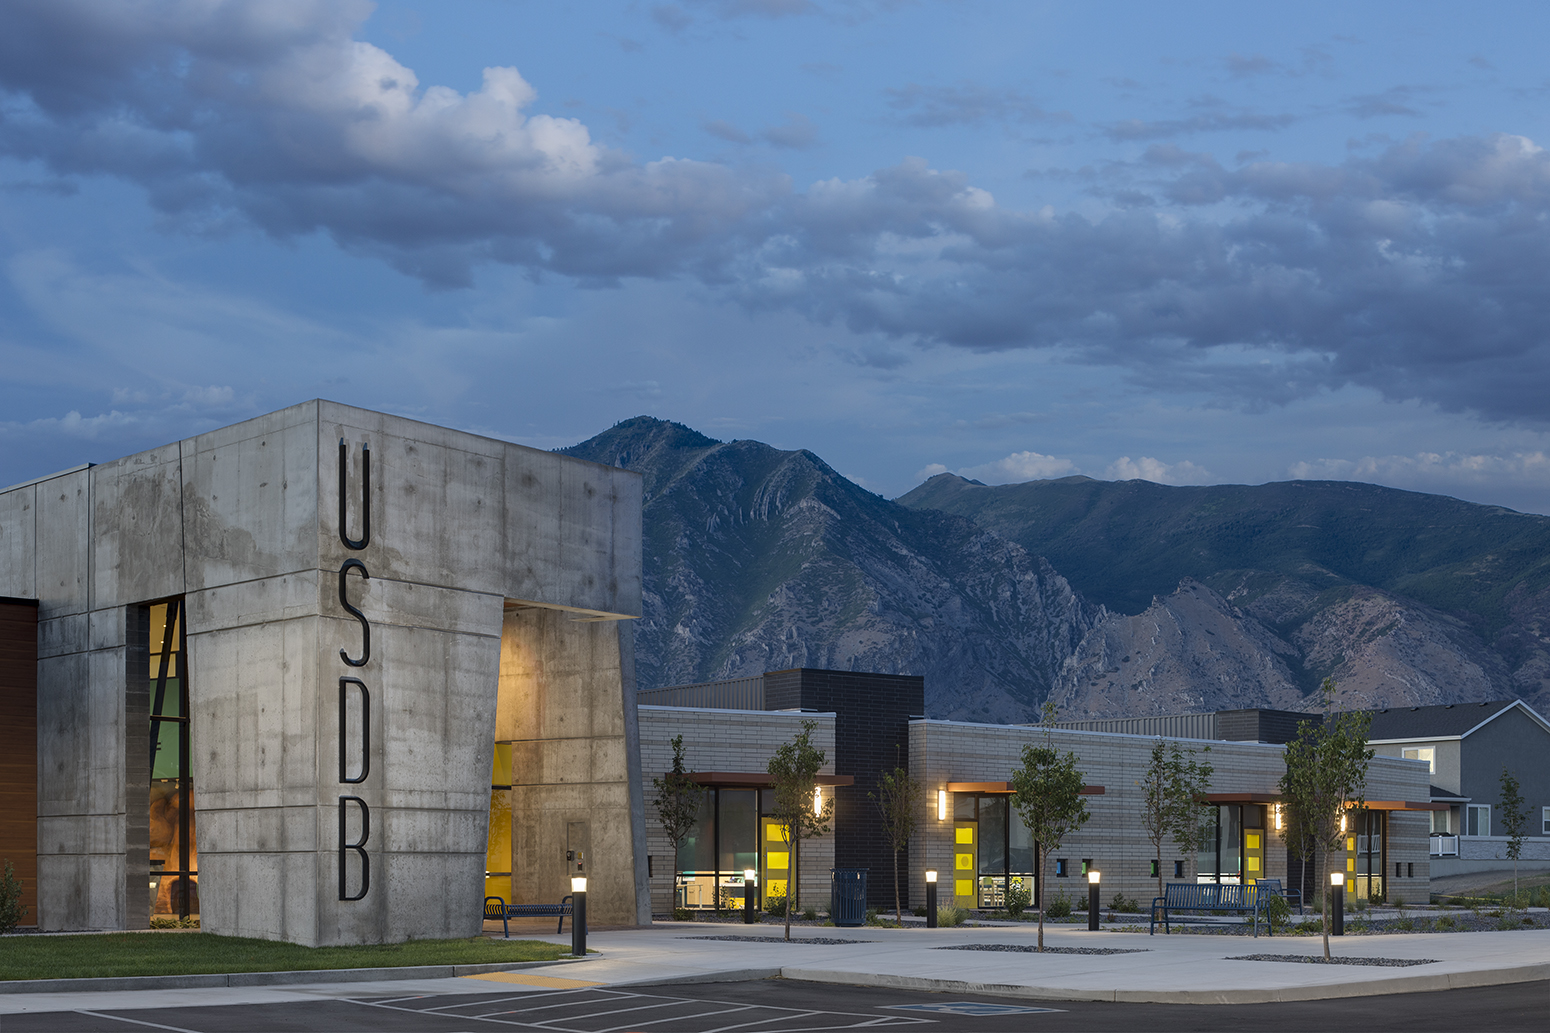 Utah School for the Deaf & Blind for Jacoby ArchitectsArchitectural Photography by Paul Richer / RICHER IMAGES